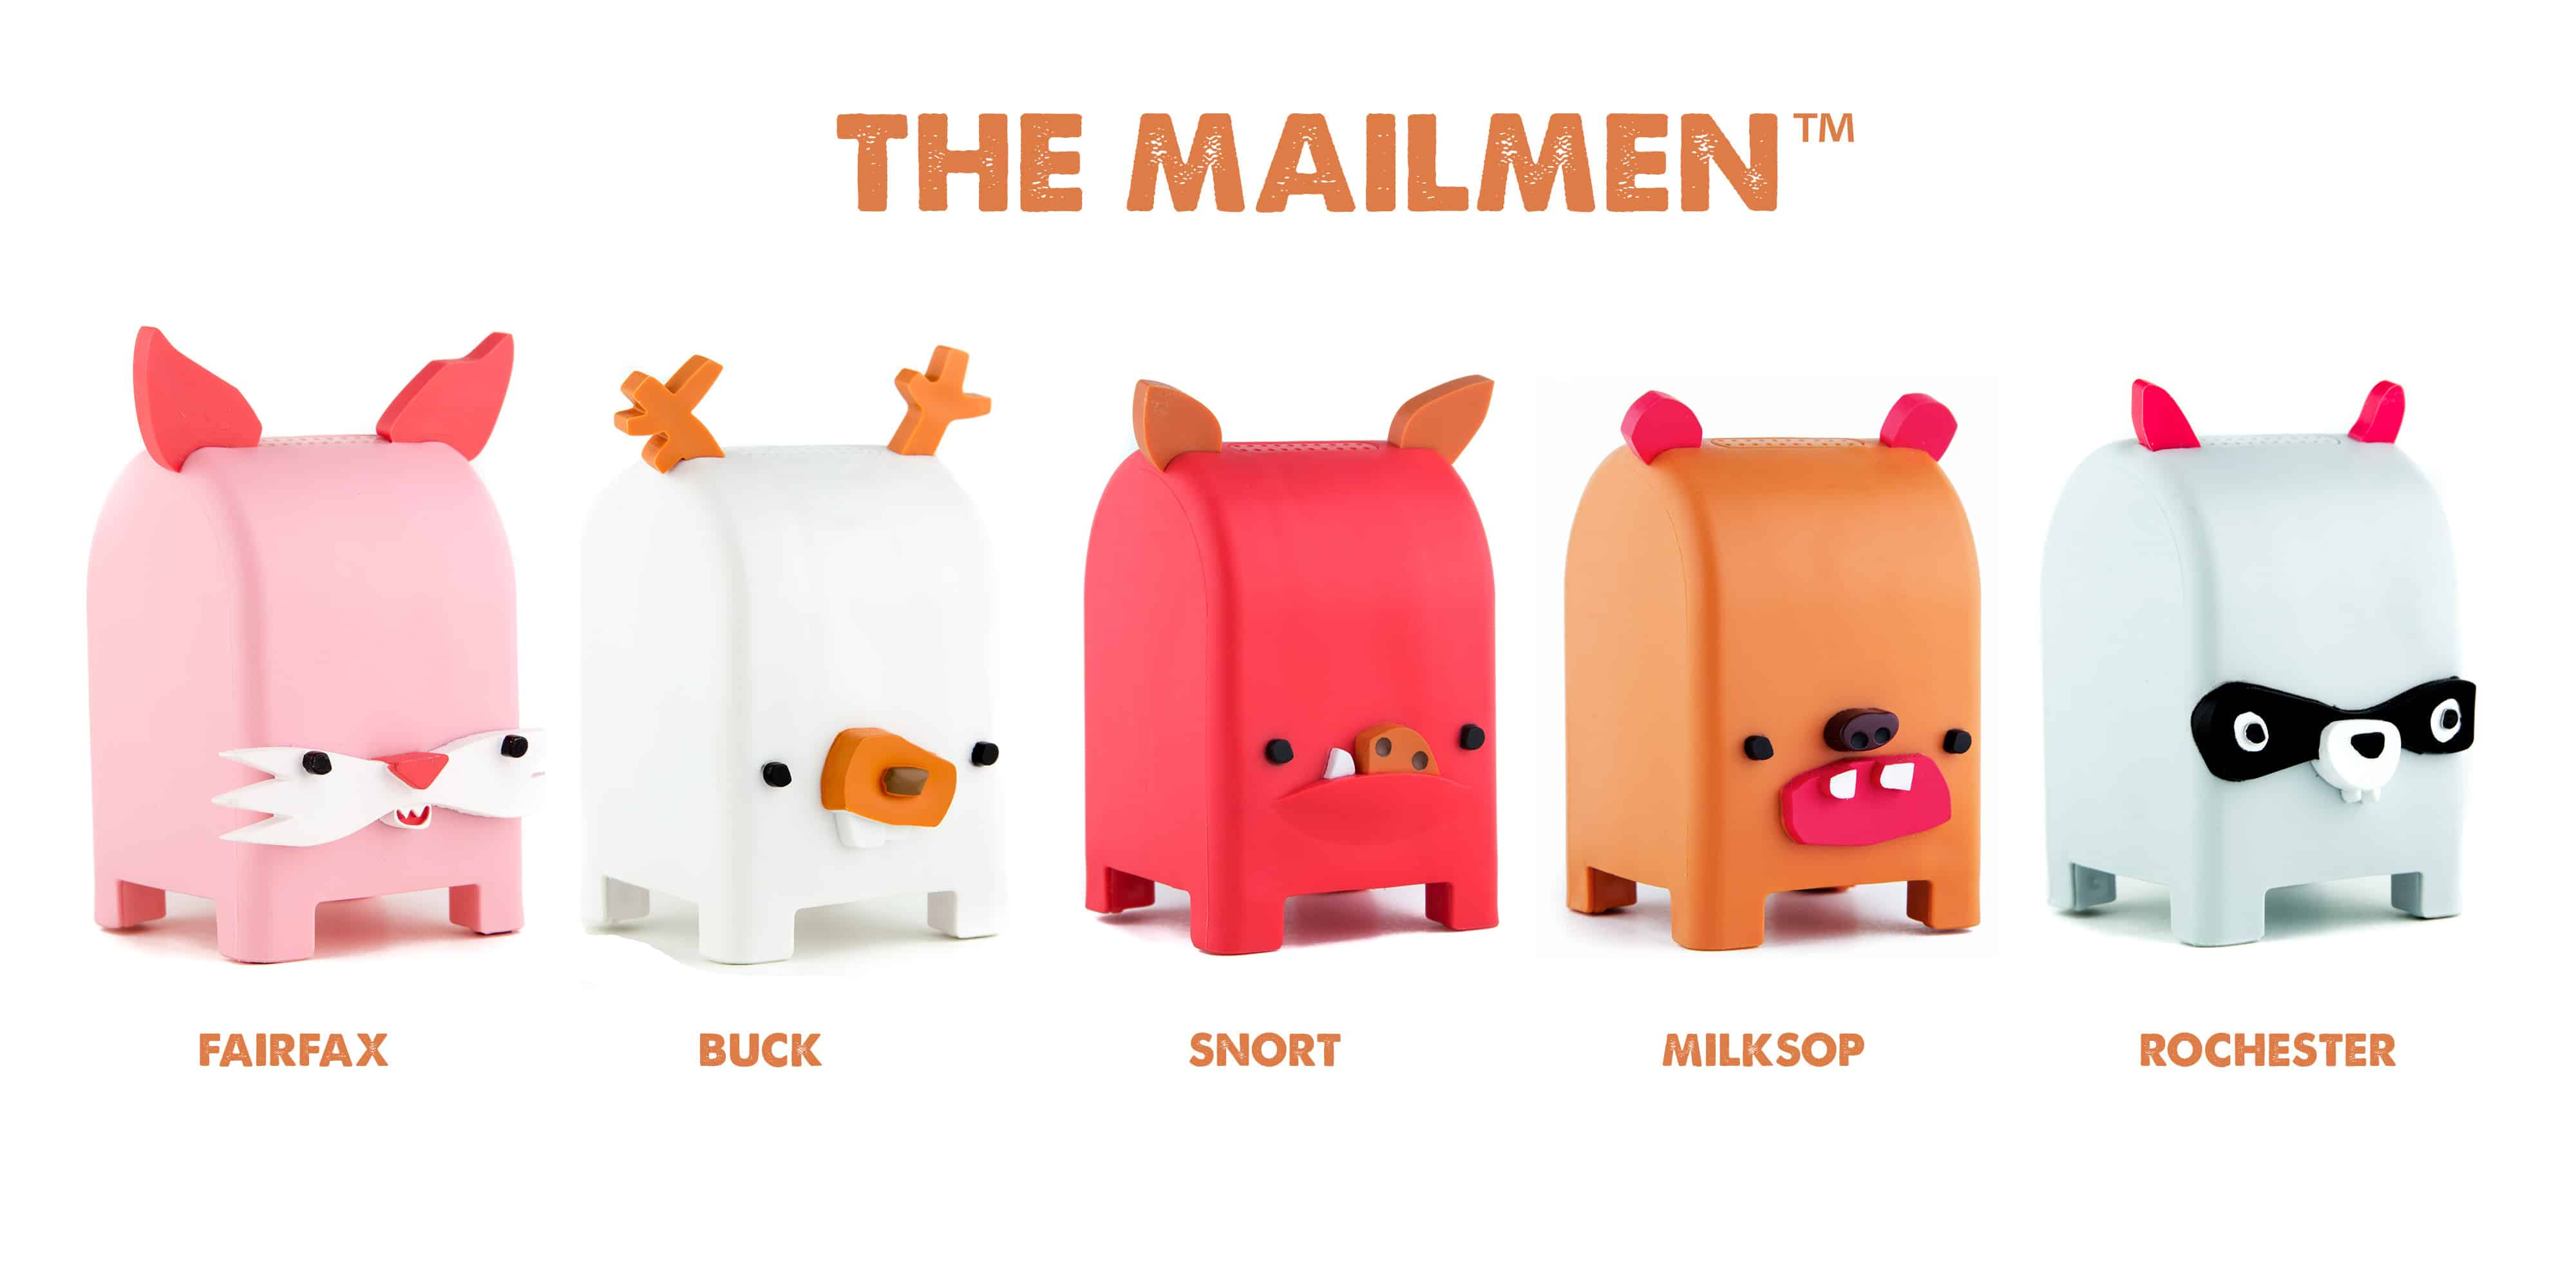 Toymail WIFI Messaging Toy the Mailmen Line Up Leave Cute Voice Messages to Love Ones